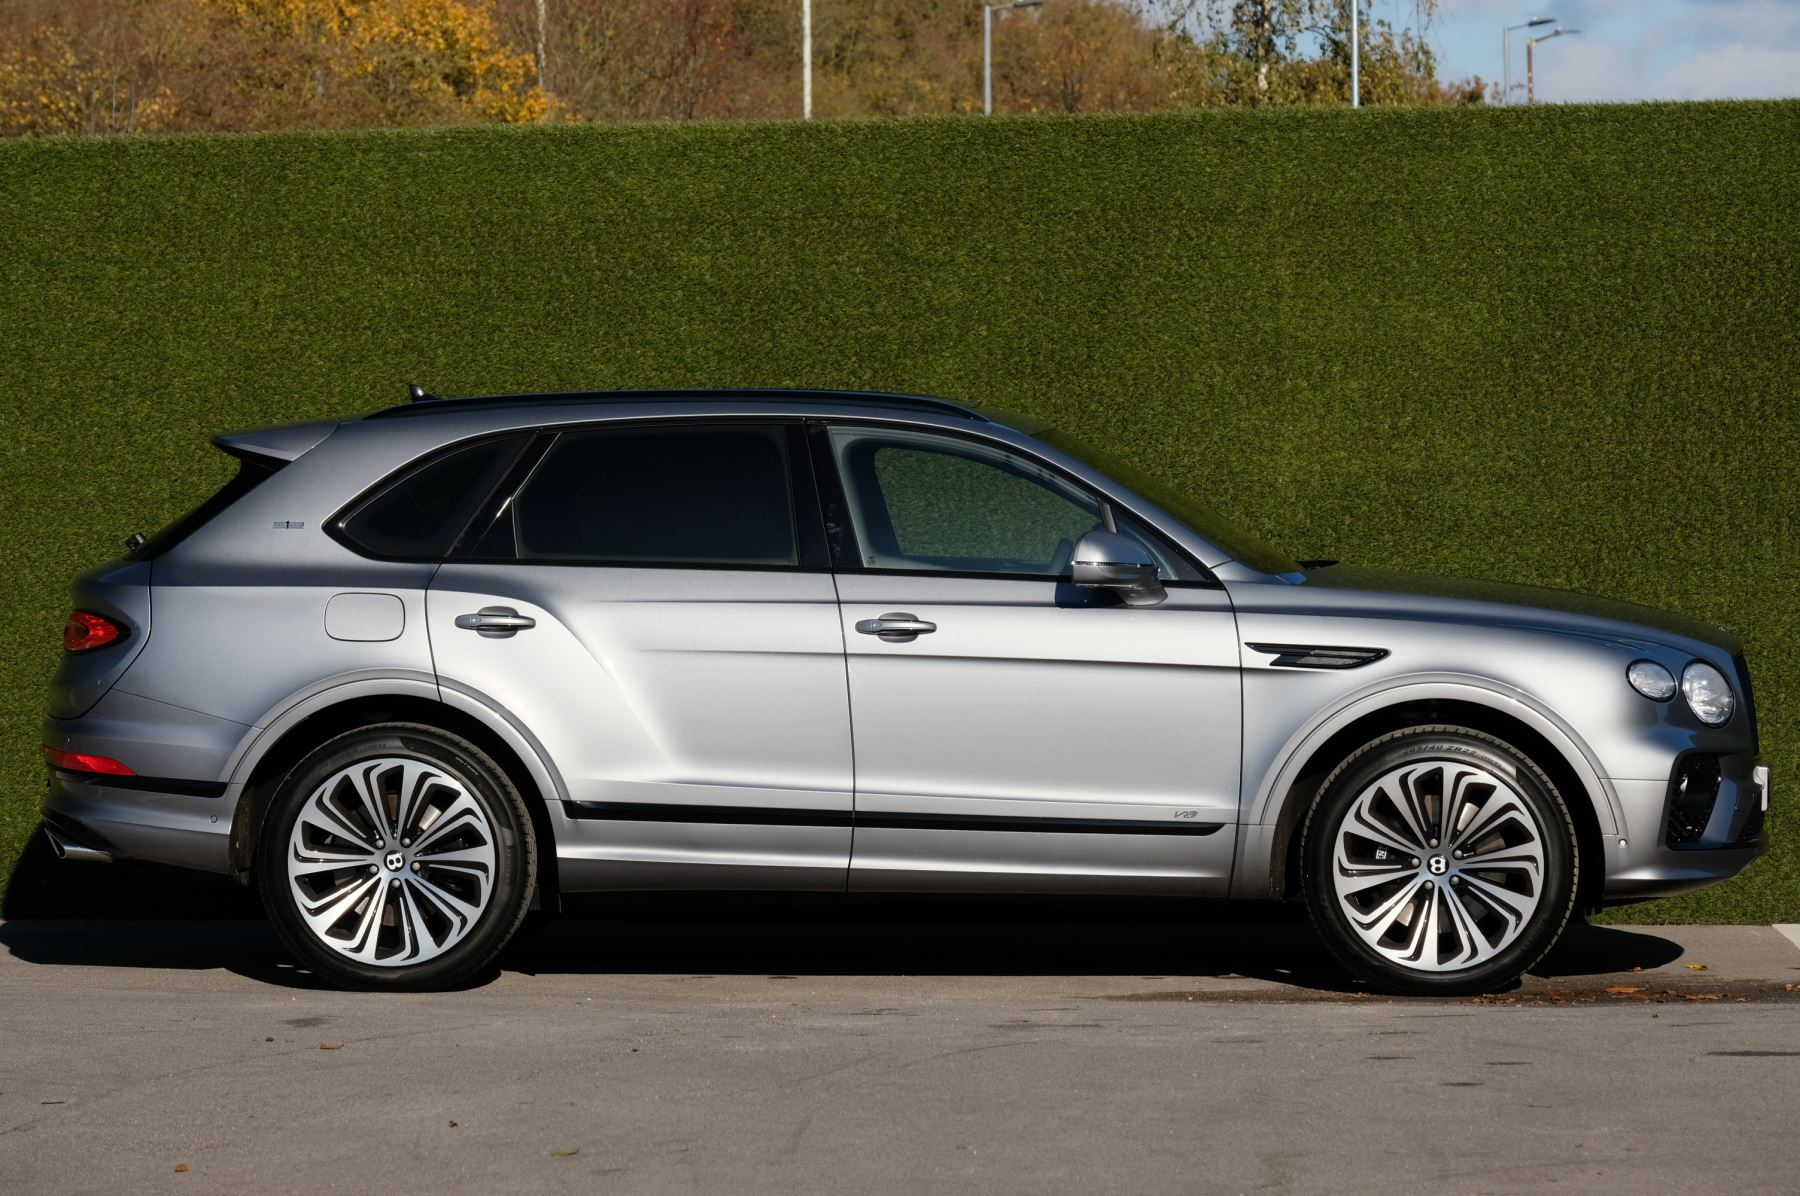 Bentley Bentayga 4.0 V8 First Edition 5dr Auto - Mulling Driving Specification image 3